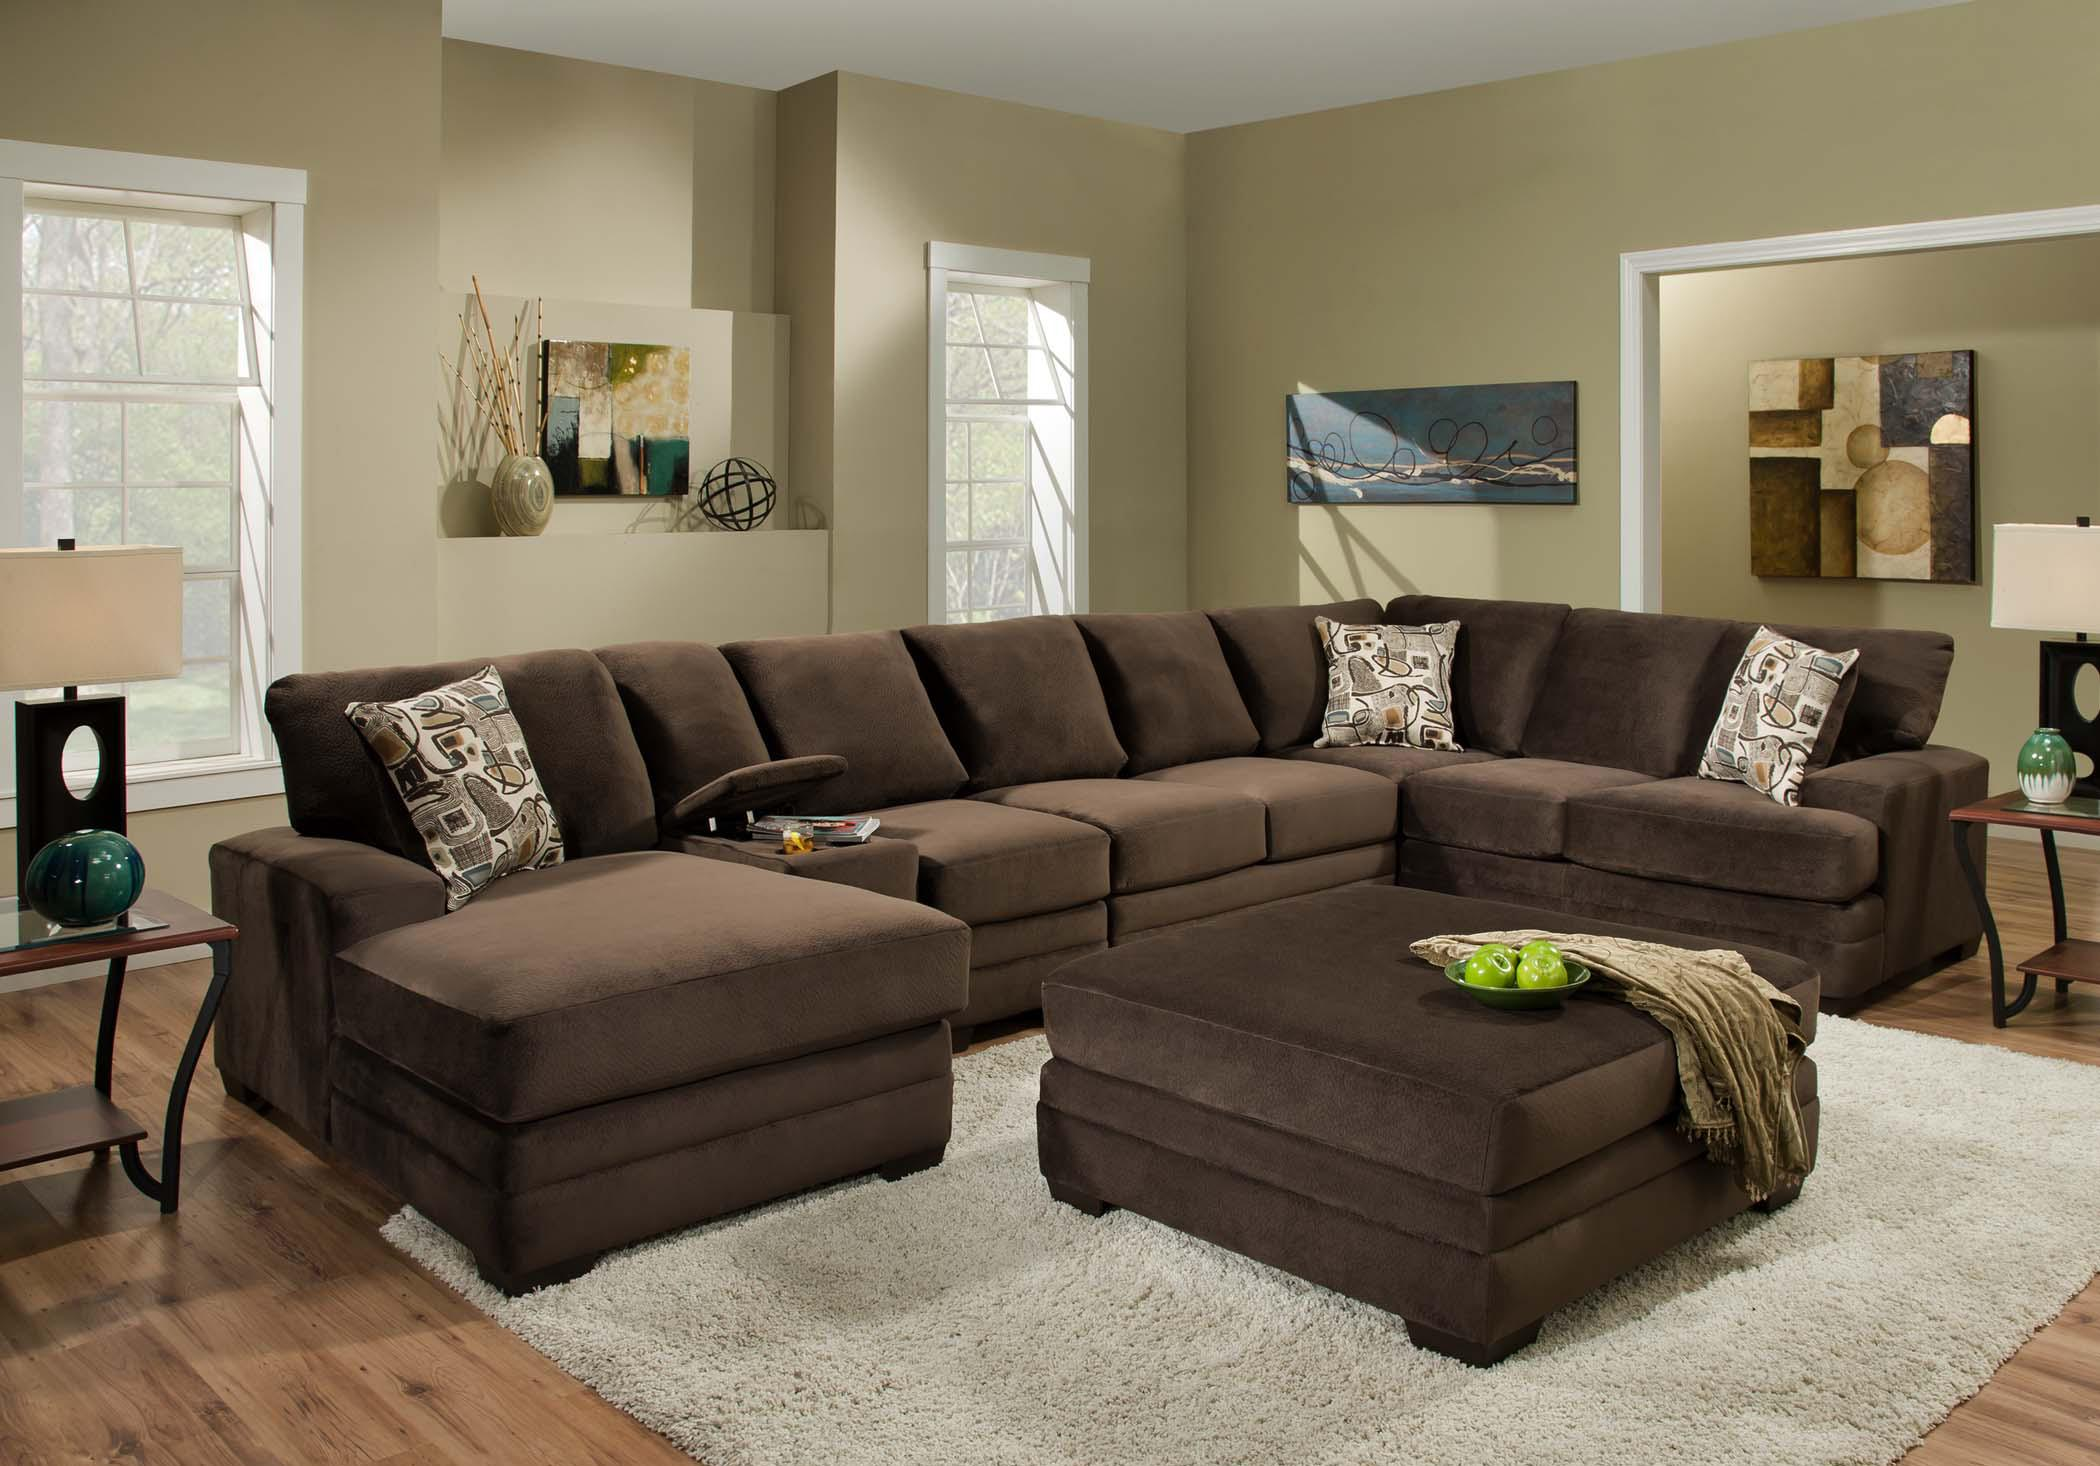 American furniture 3500 contemporary sectional sofa with 6 for American living style furniture company